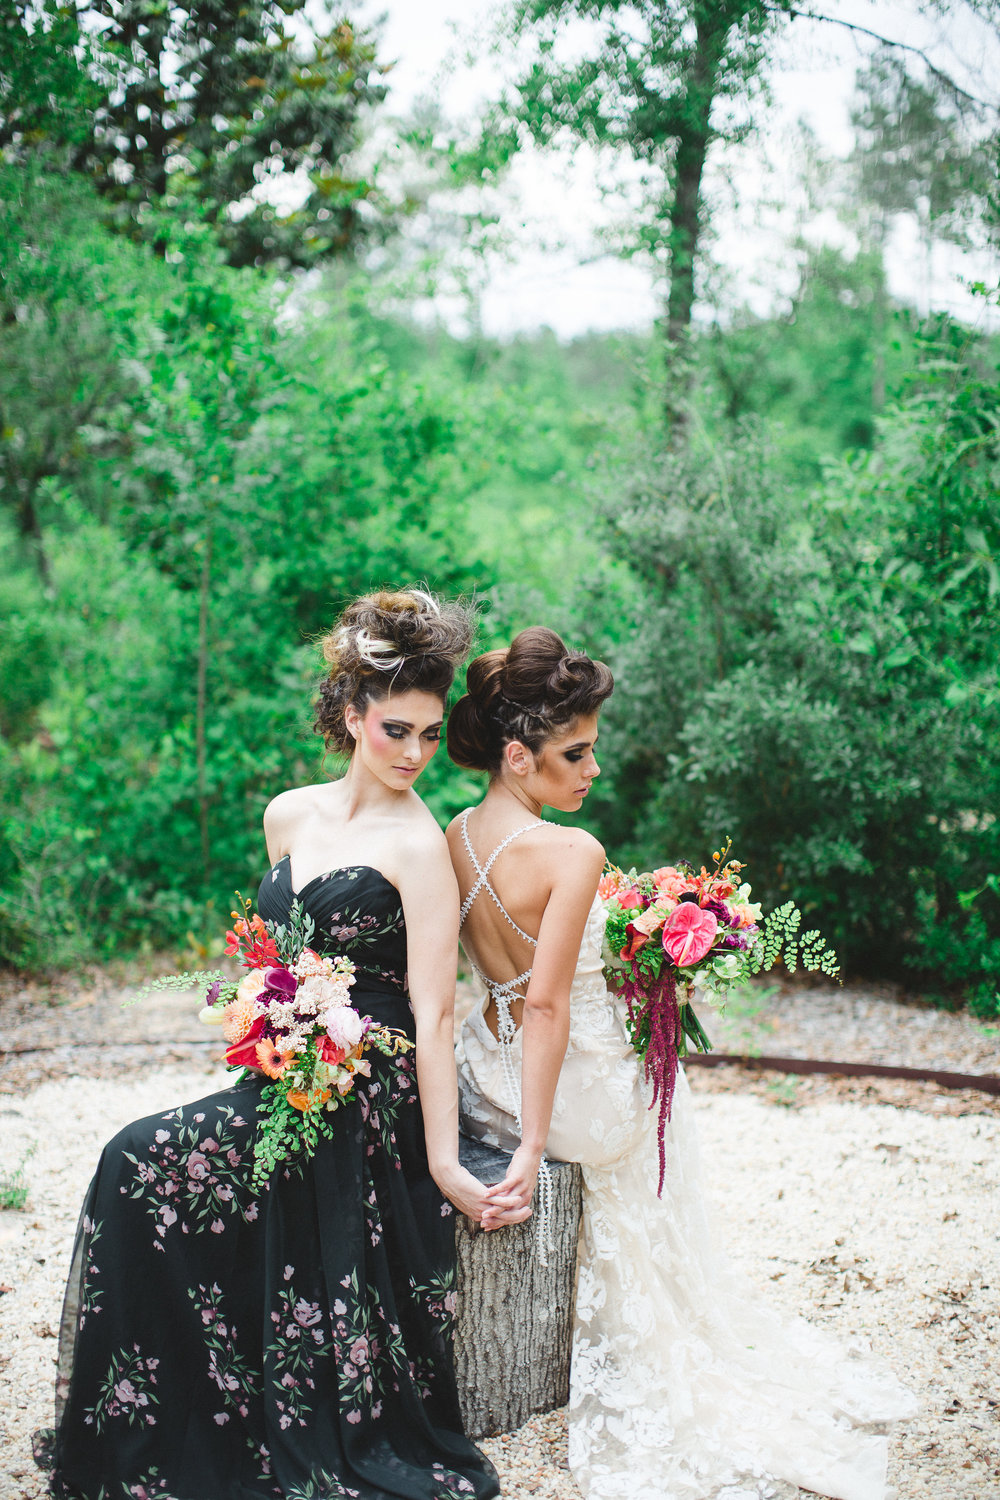 izzy-hudgins-photography-emily-burton-designs-ivory-and-beau-bridal-boutique-daughters-of-simone-sonje-jenny-yoo-bridesmaids-glamping-wedding-boho-wedding-outdoor-wedding-coldwater-gardens-wedding-savannah-bridal-boutique-savannah-wedding-planner-14.jpg